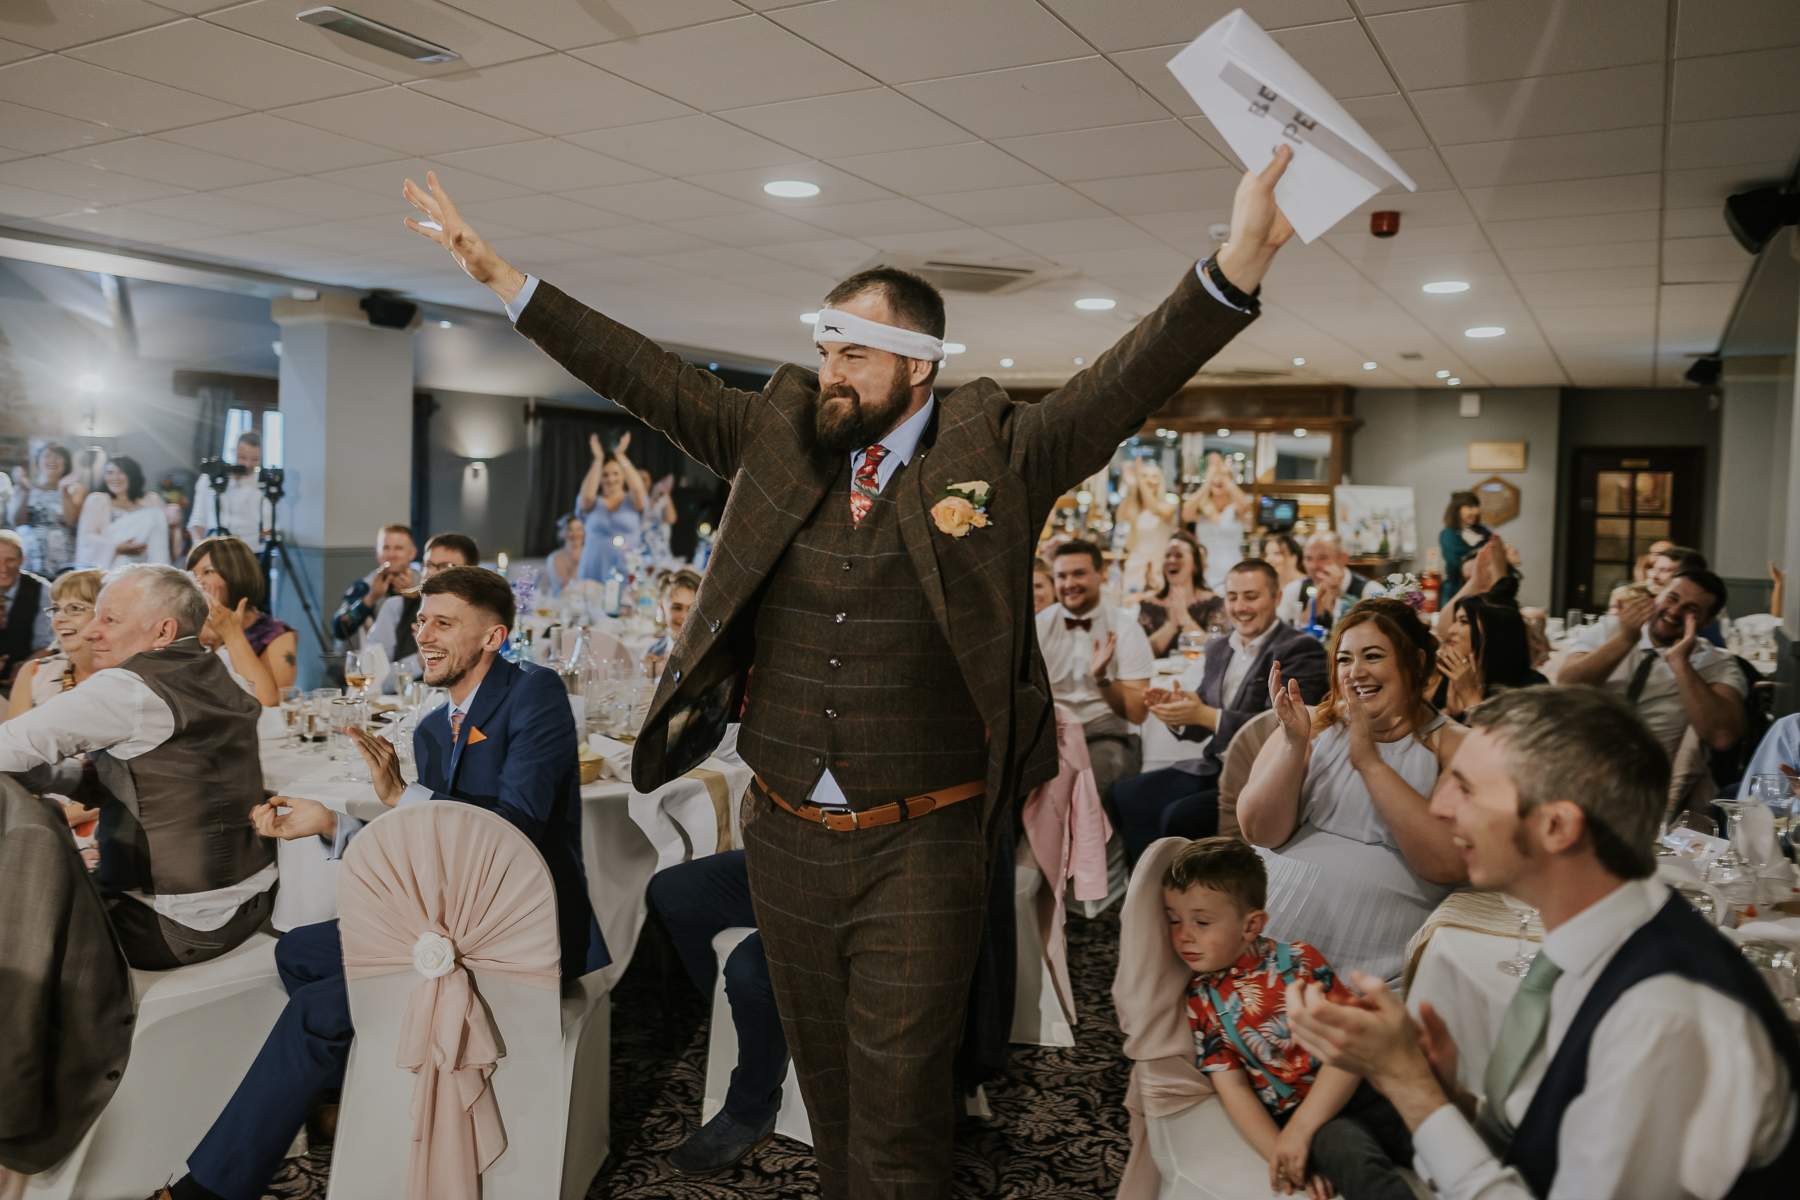 Alternative_Manchester_Wedding_Photography_The_Pin-Up_Bride_Photography-40.jpg